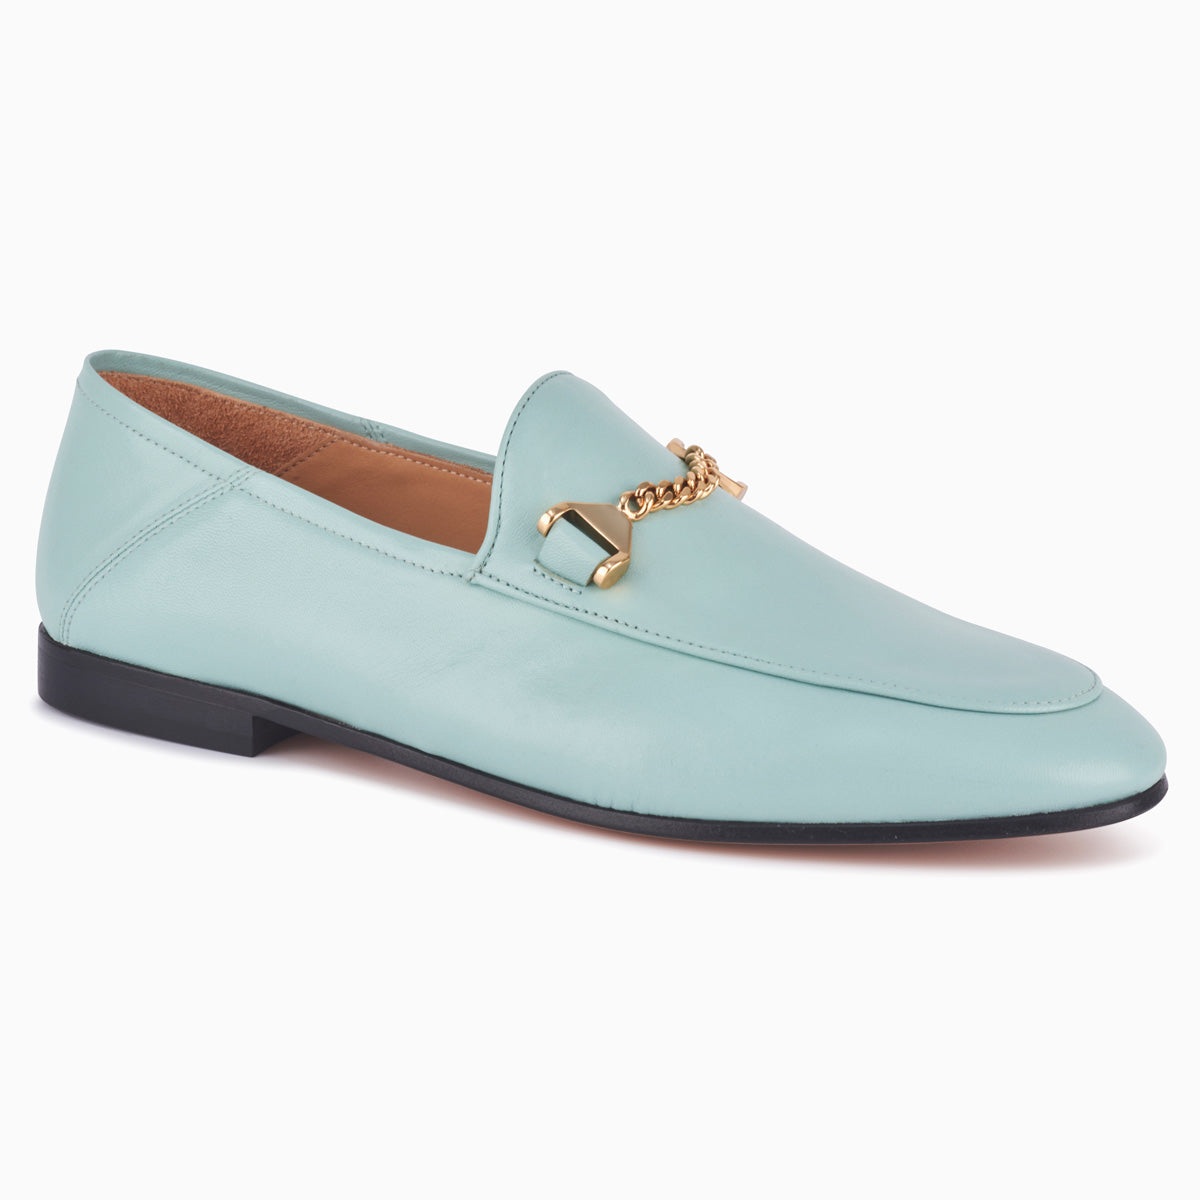 Hyusto Debbie Loafer Mint Glove 3/4 View